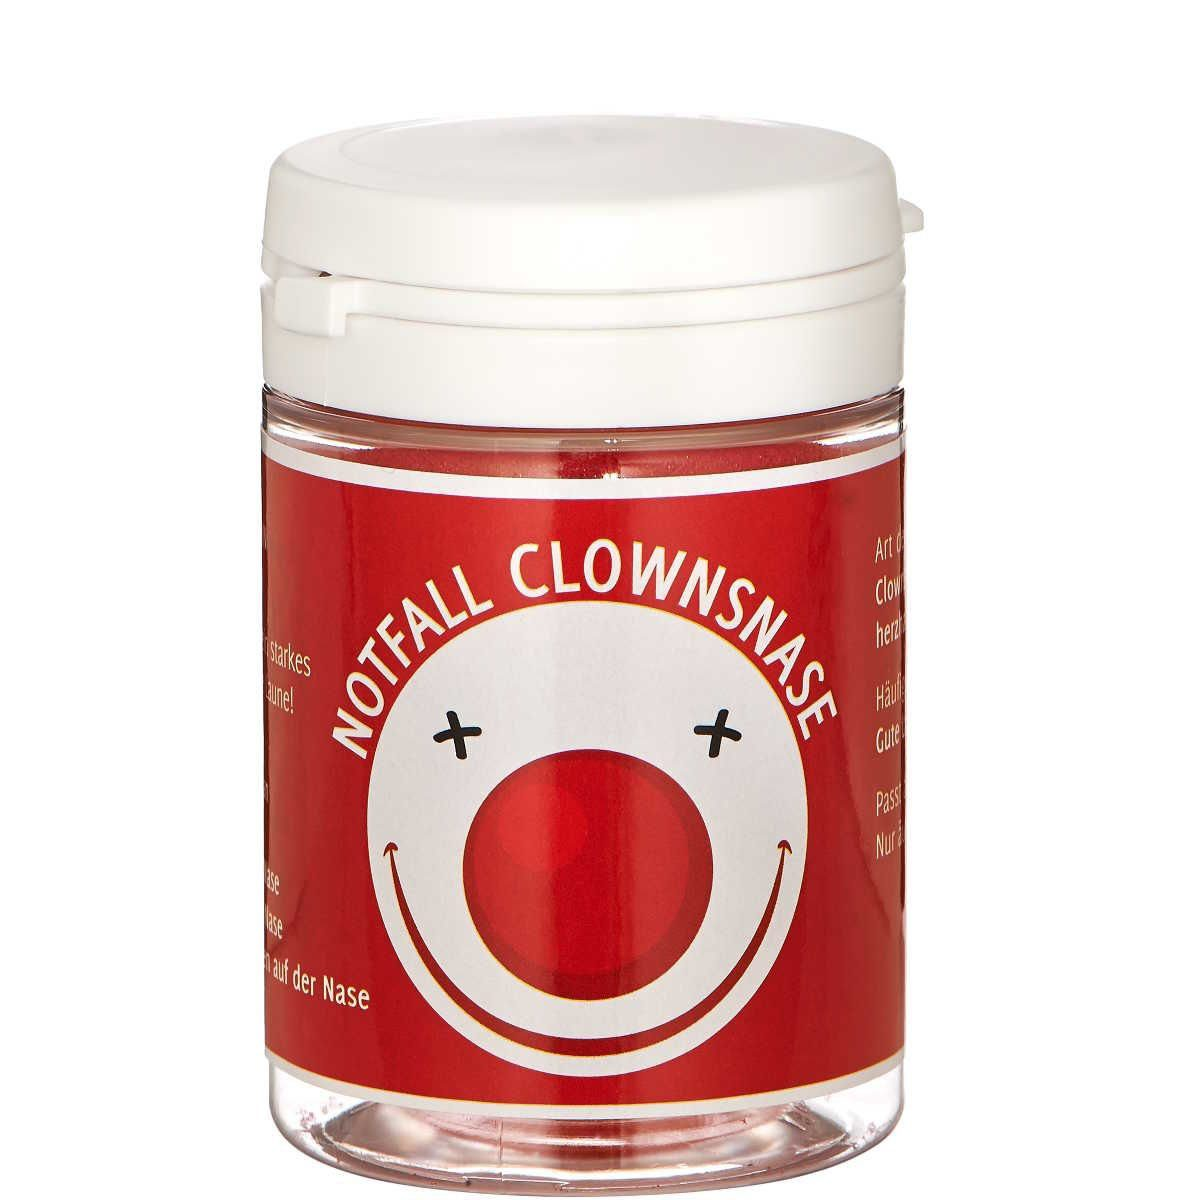 BUTLERS FIRST AID »Notfall Clownsnase«